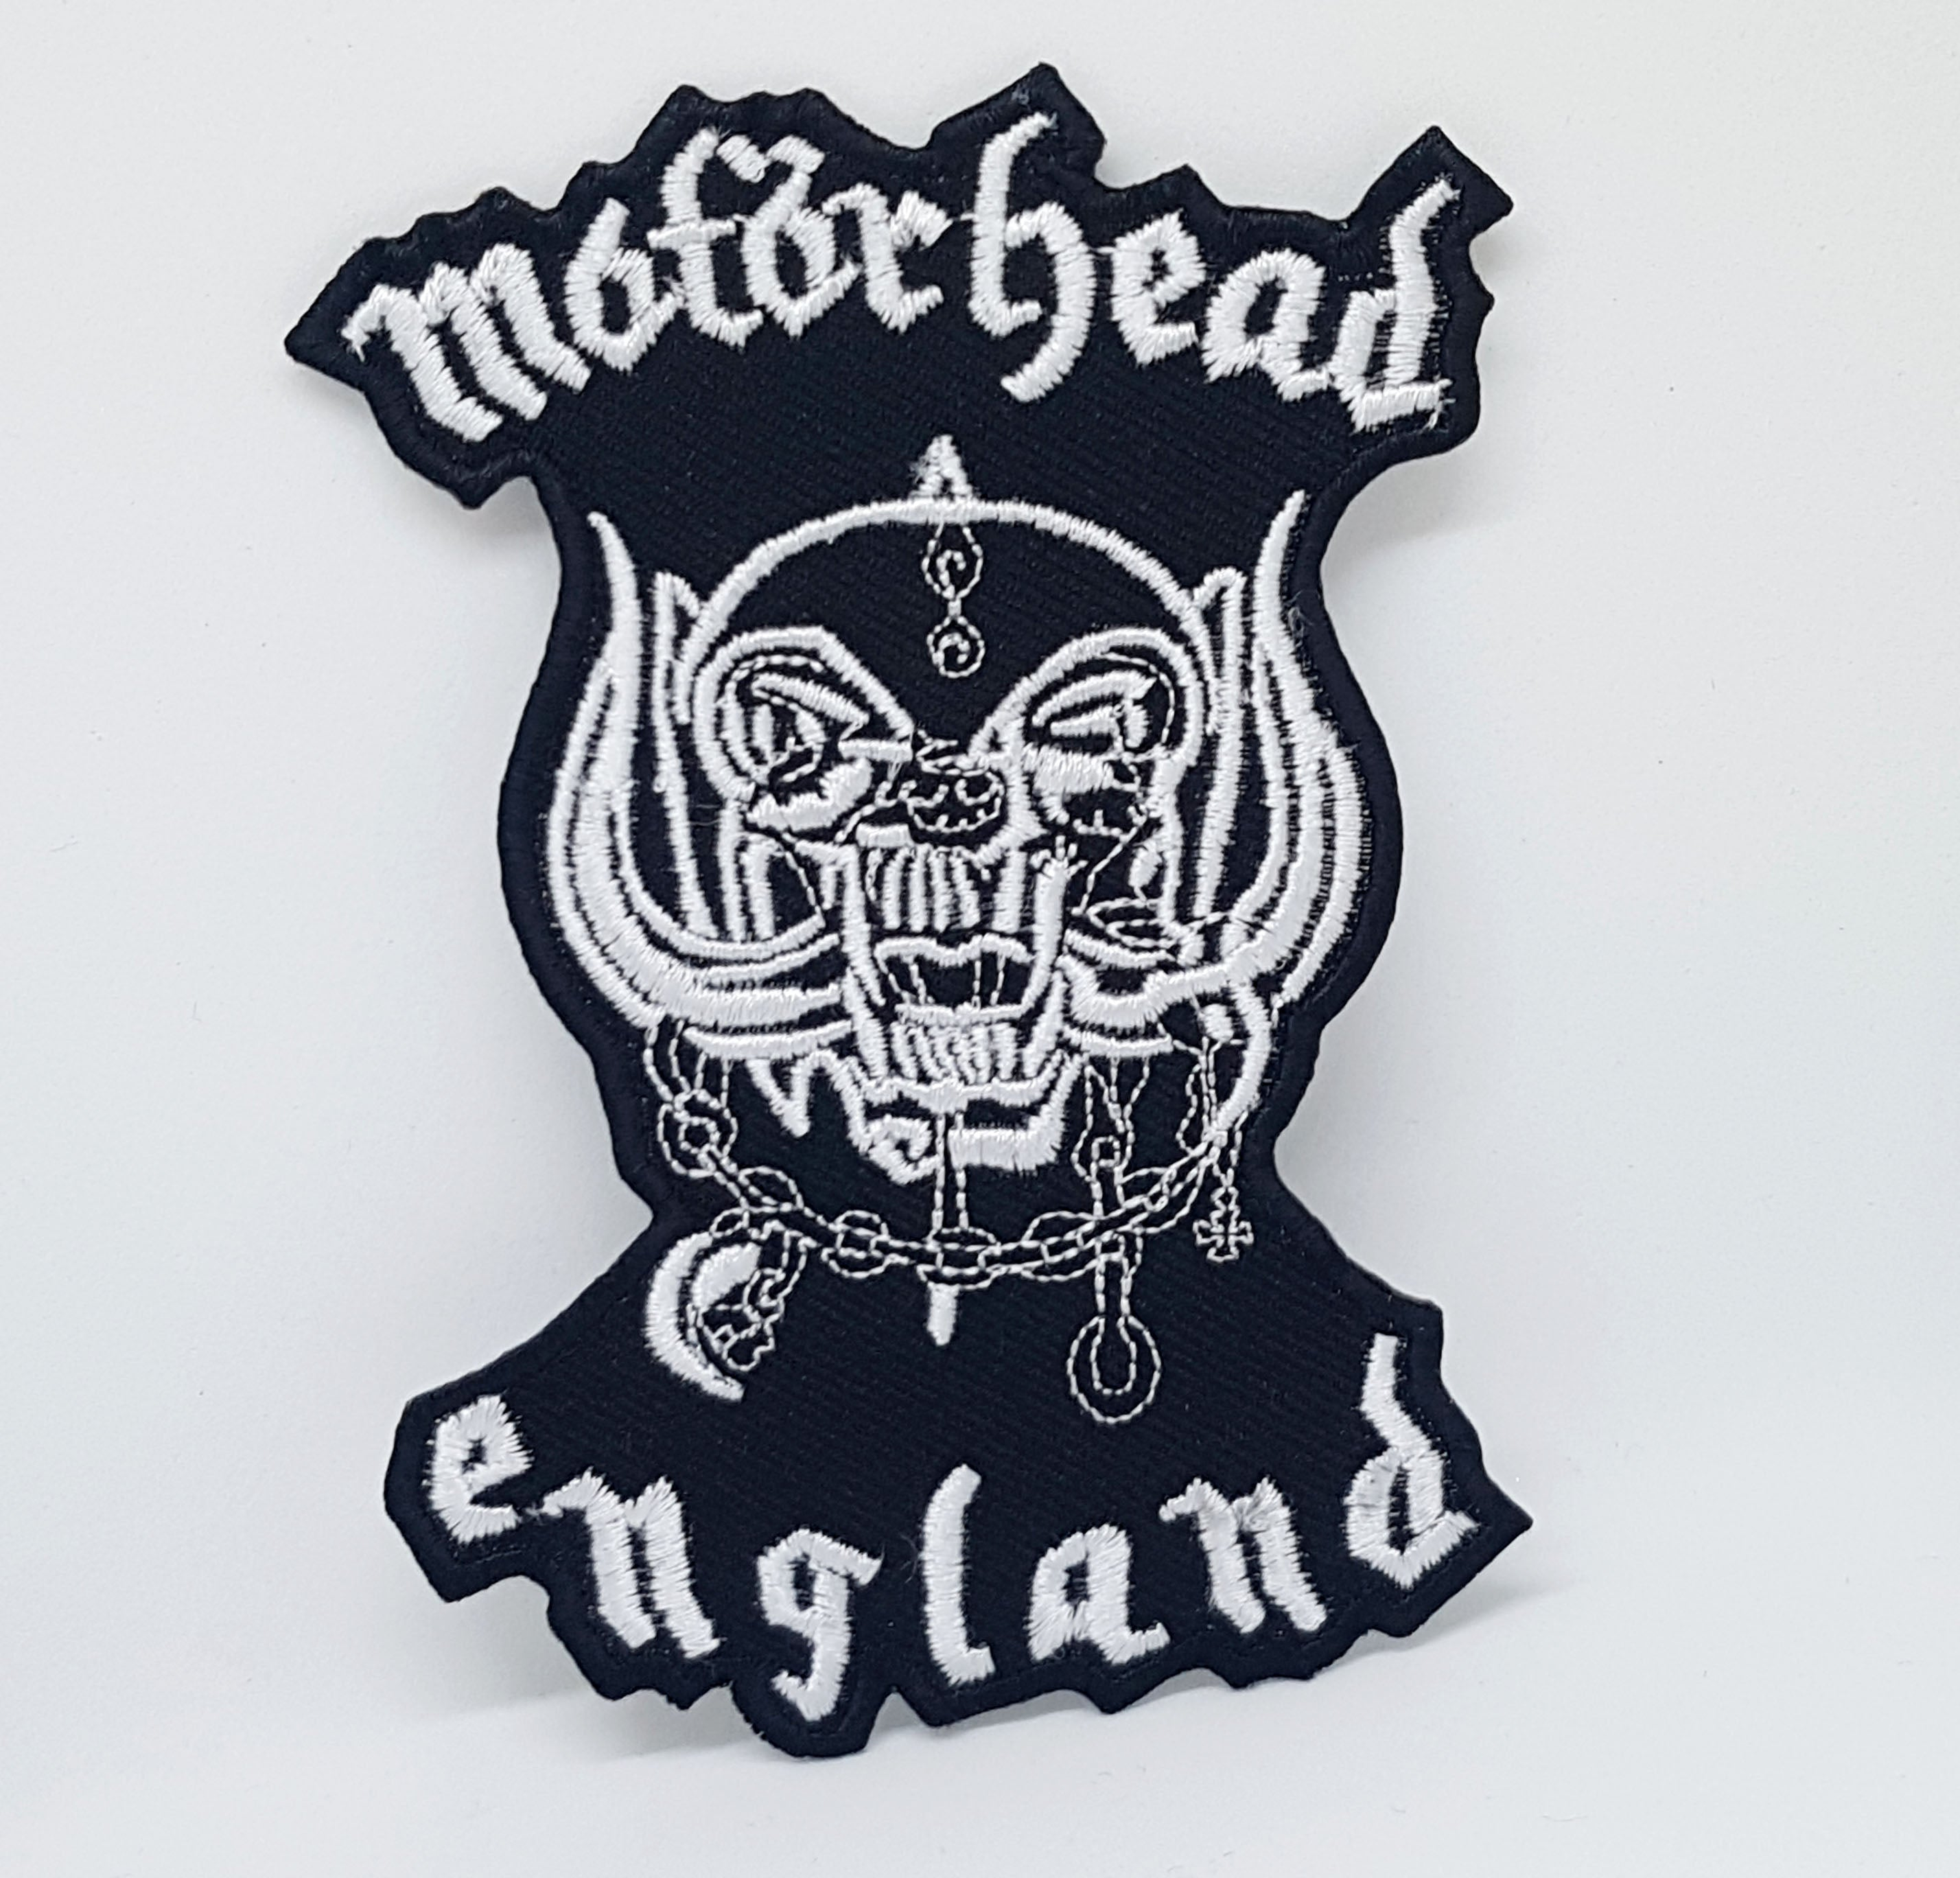 Motorhead Band Rock Metal Music Iron/Sew on Embroidered Patch Collection - Motorhead England